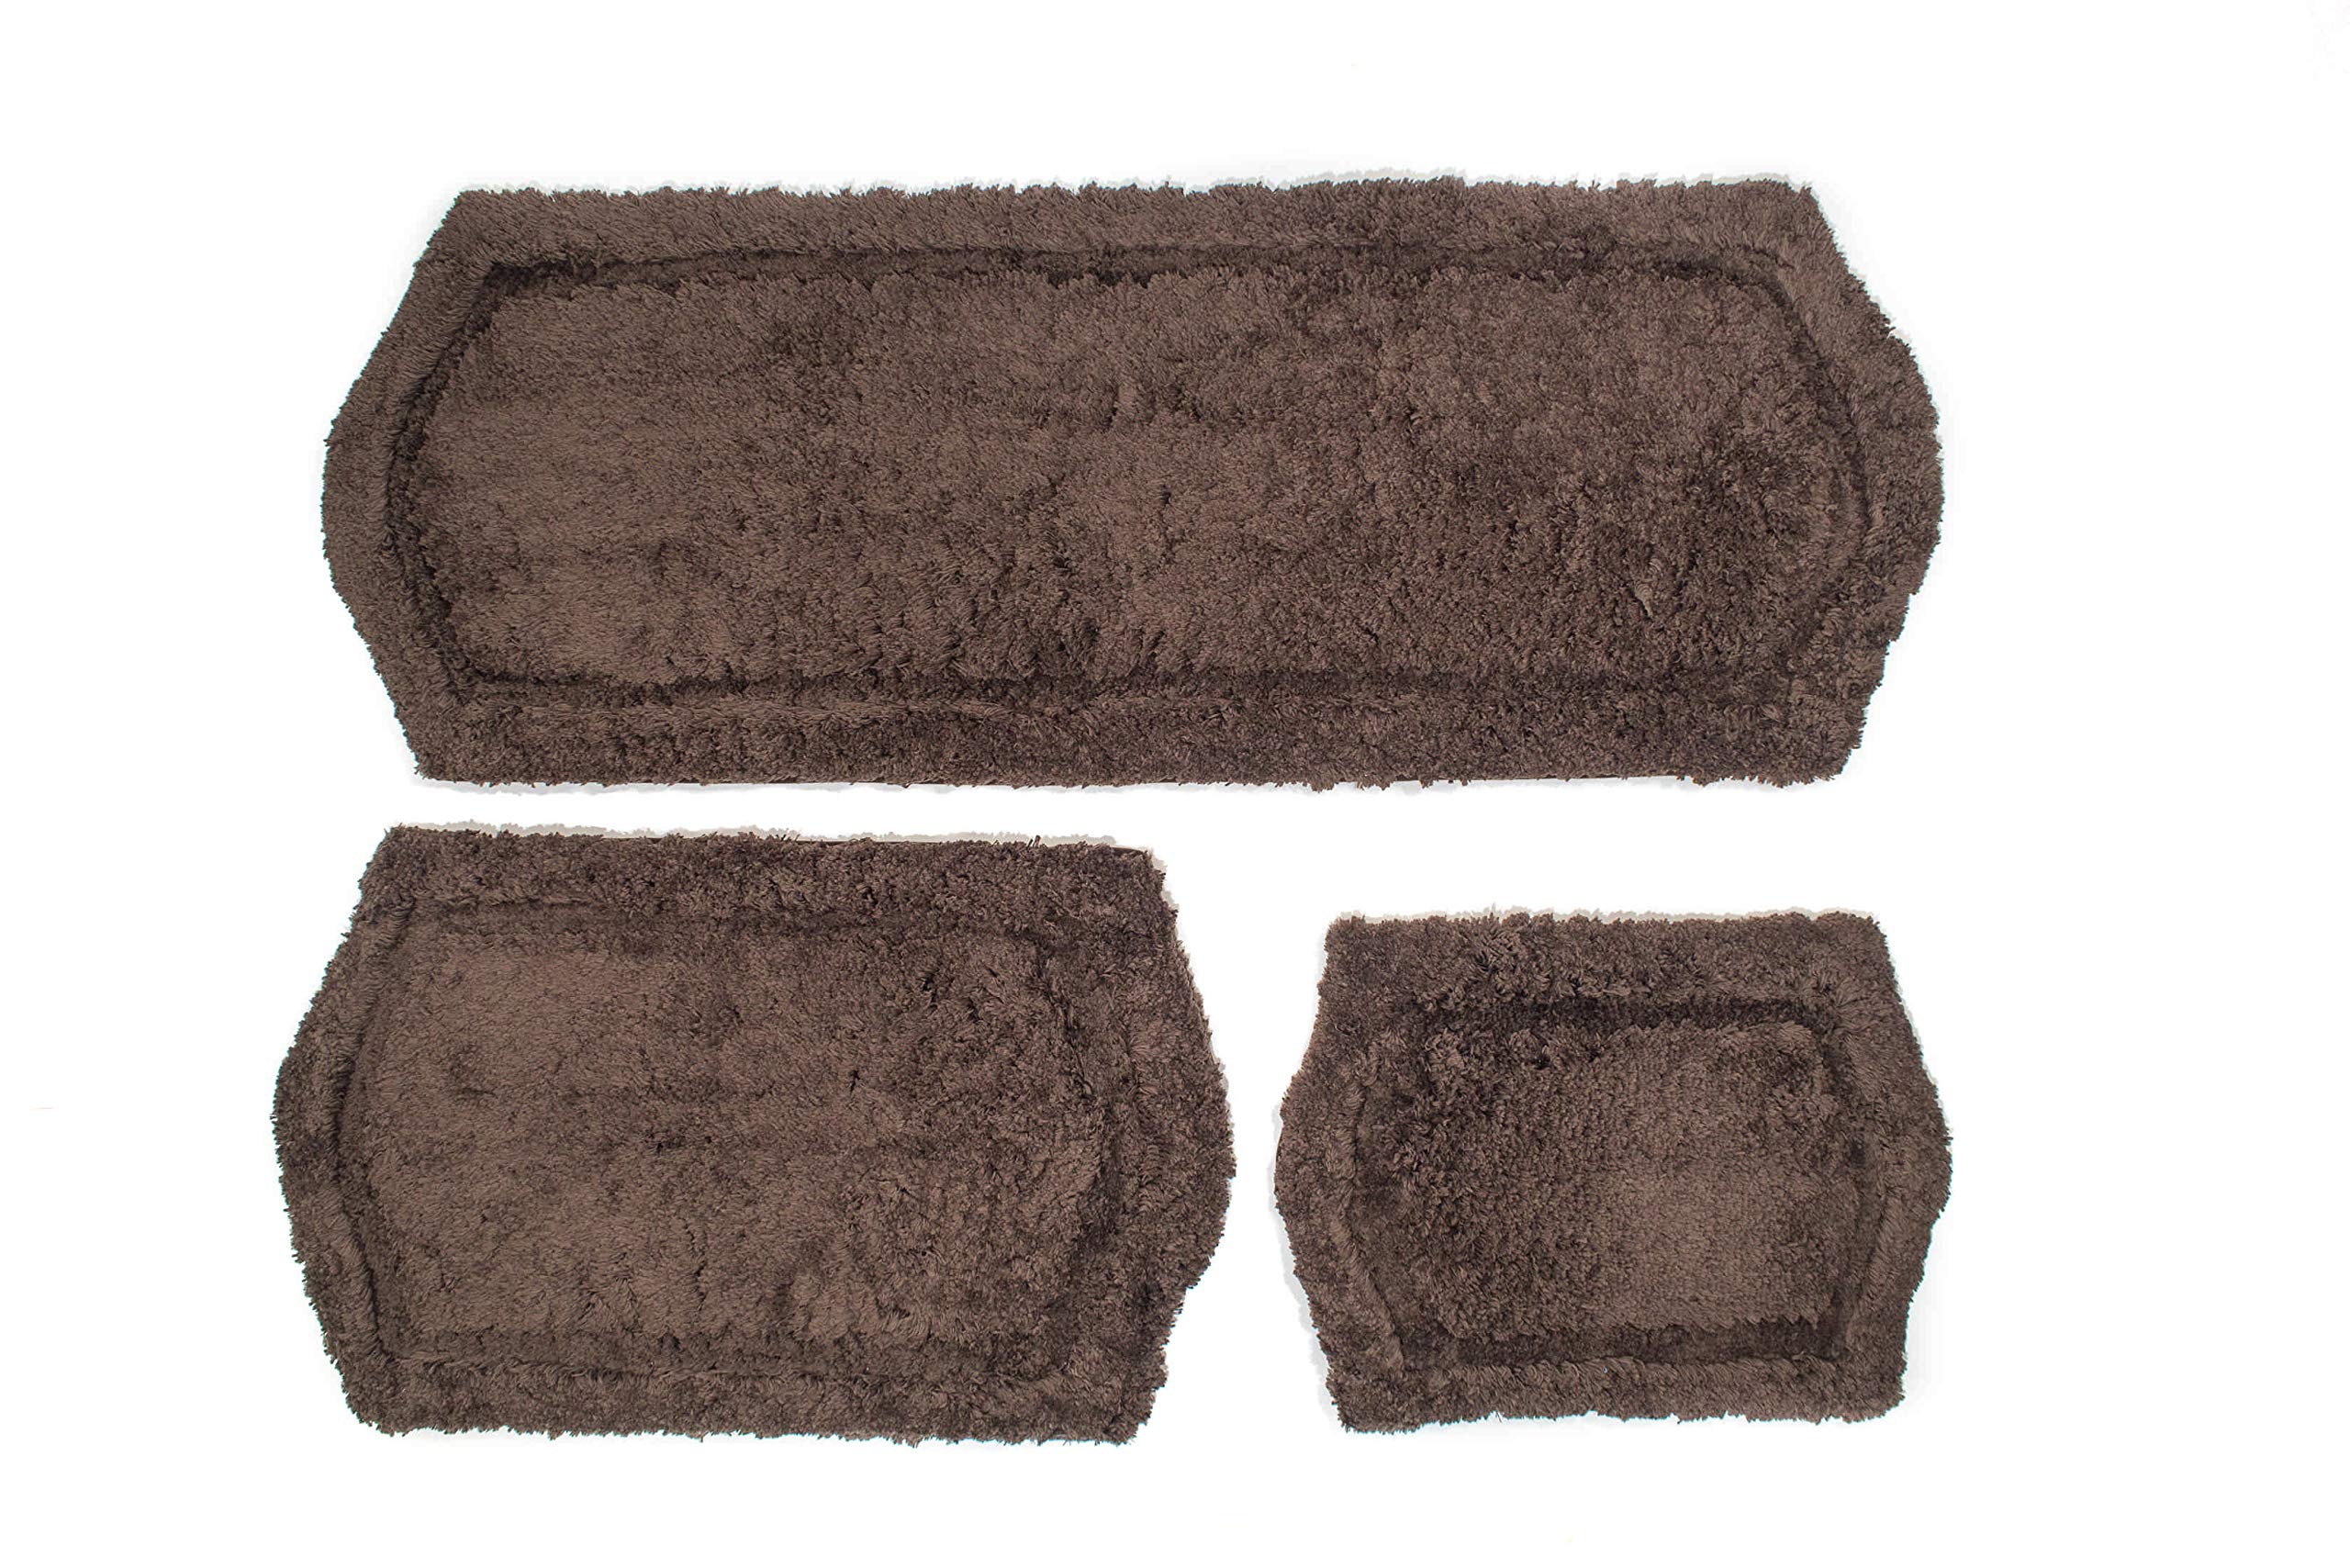 Chesapeake Paradise 3 Pc. Memory Foam Chocolate Bath Rug Set 43263 (22''x60'' & 21''x34'' & 17''x24'')